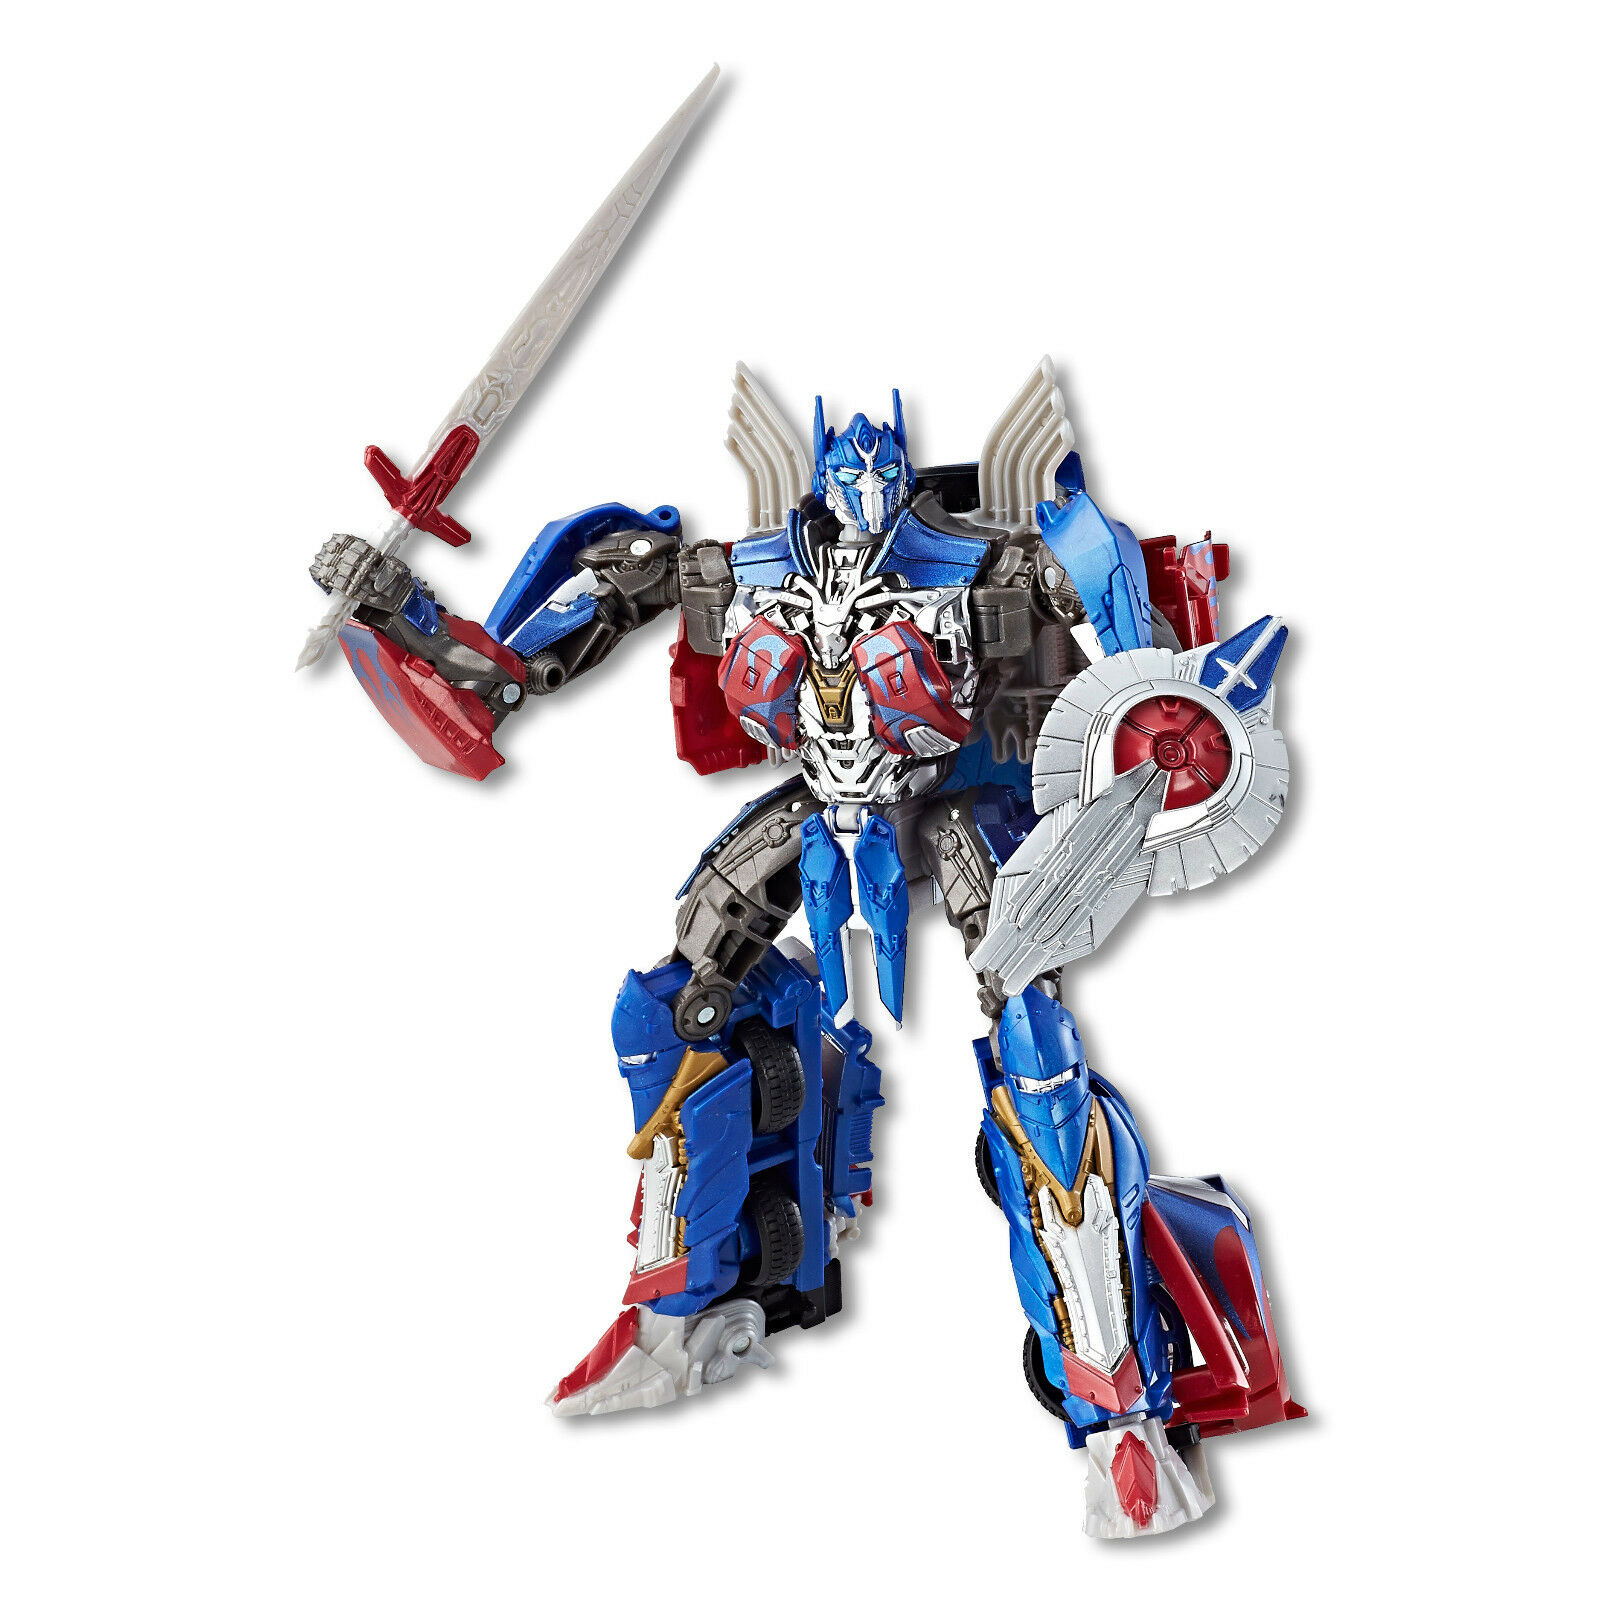 Hasbro SDCC 2017 Exclusive Transformers  The Last Knight Voyager Optimus Prime